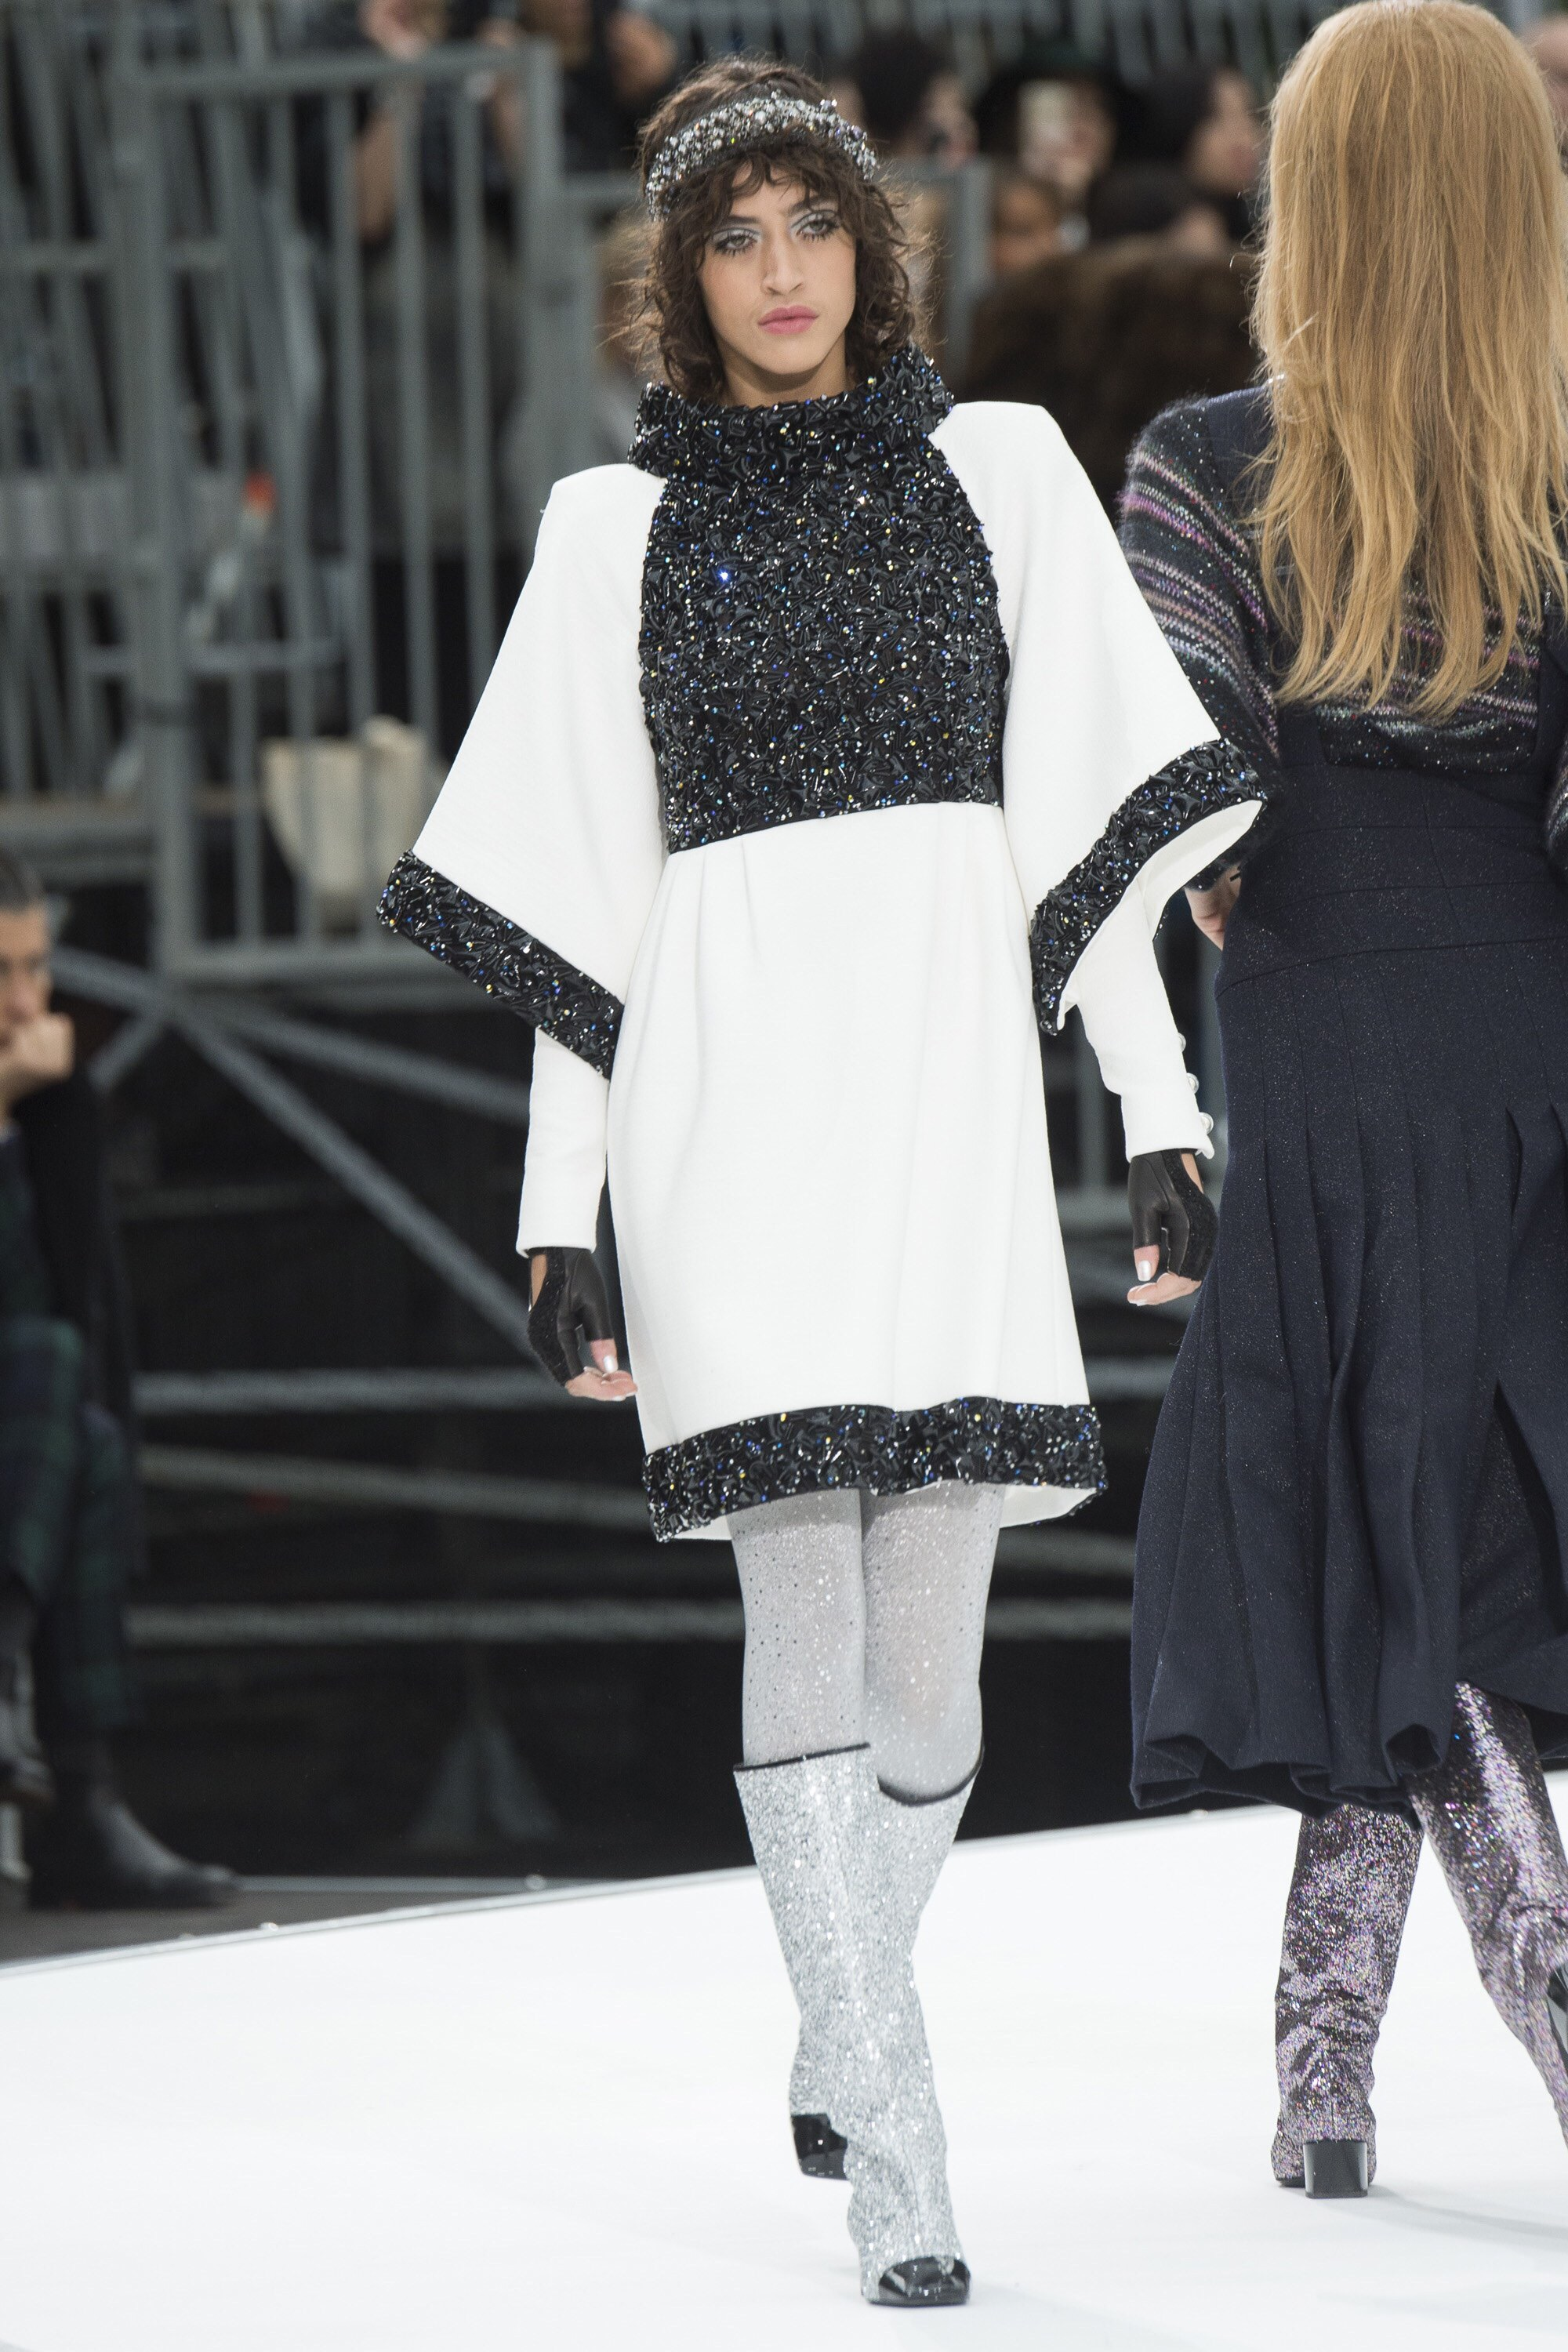 chanel fall '17 – Couture Warrior